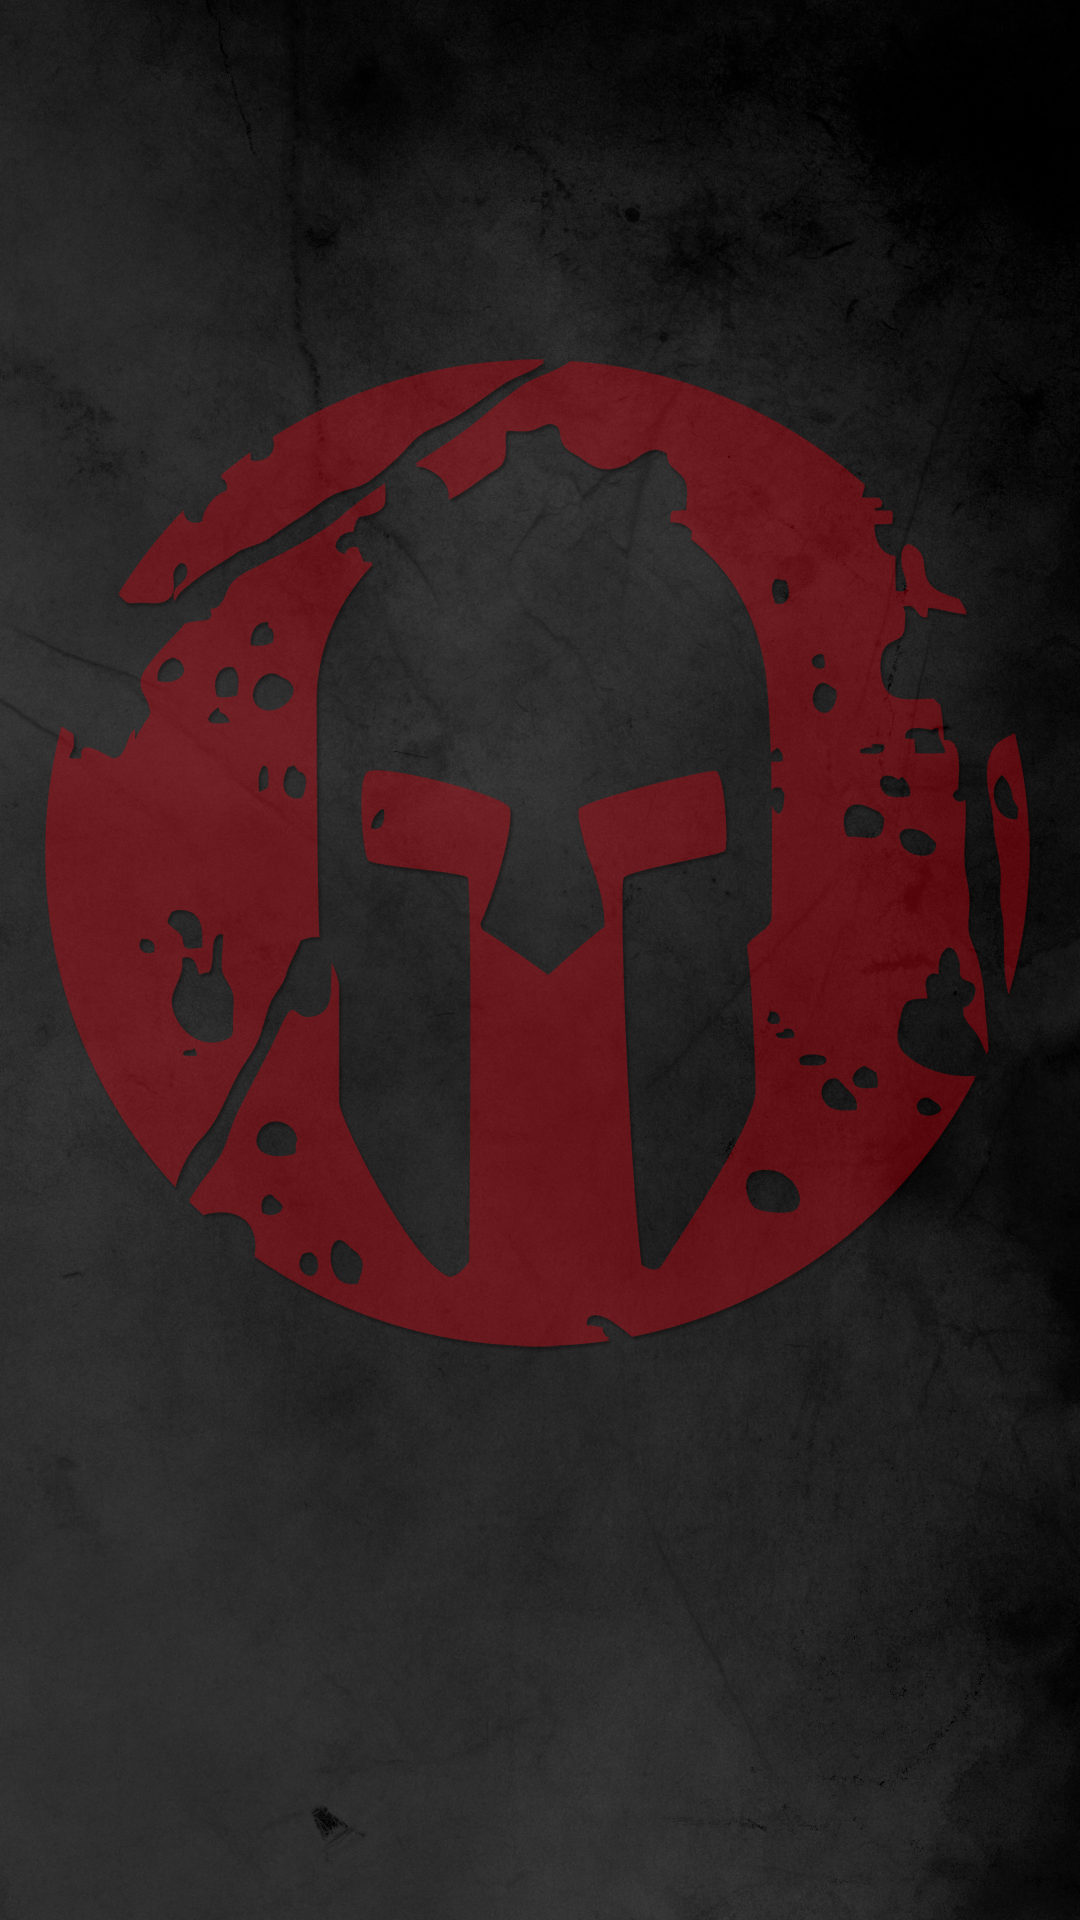 spartan iphone 5 wallpaper - photo #38